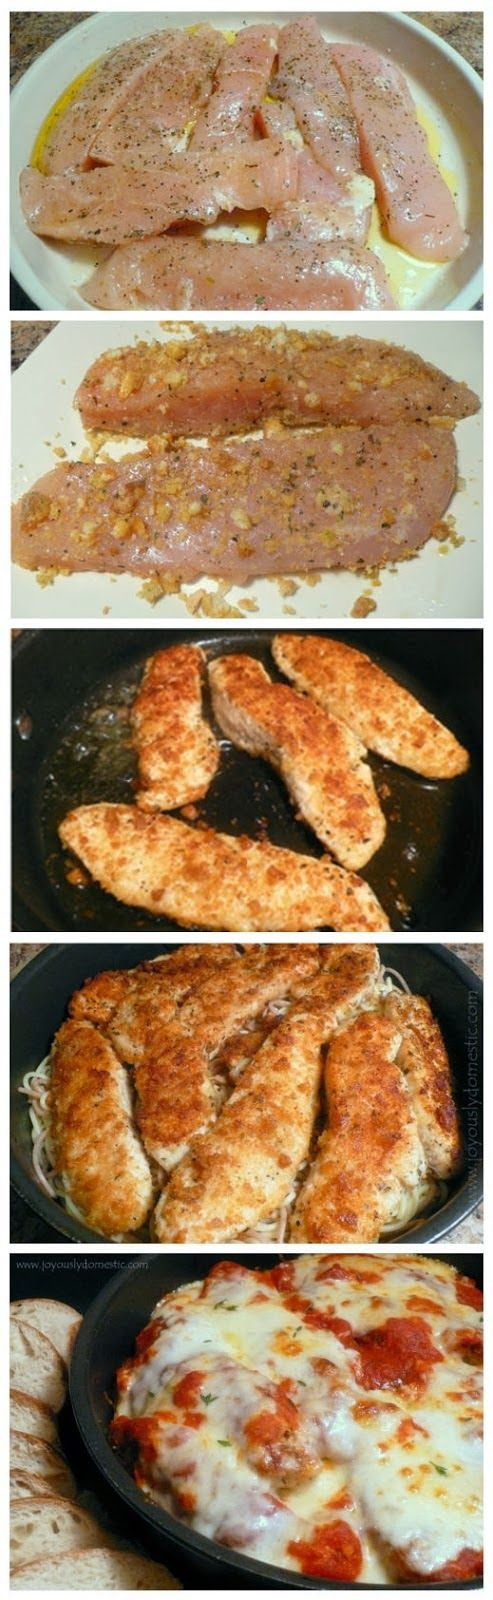 Skillet Chicken Parmesan Over Pasta   Ingredients:     2 plump chicken breasts, cut in half diagonally and each thin half cut into 2 stri...